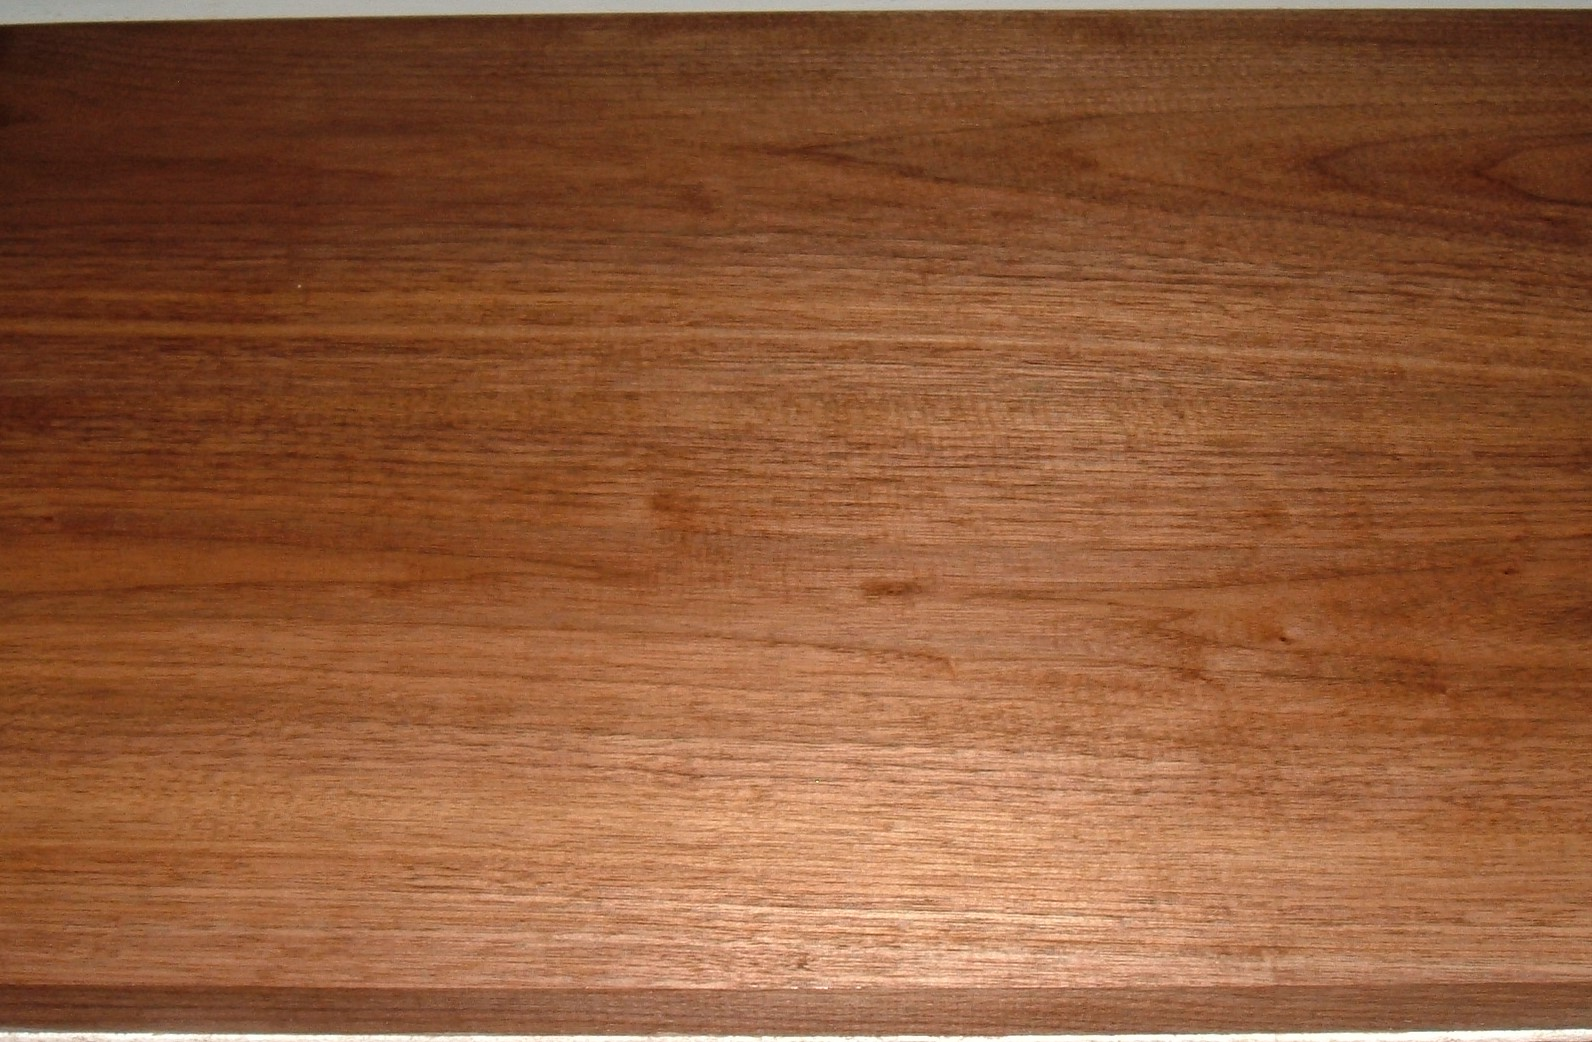 BW2003-42JJ, 2 bds, 3/4x8x25 ,11/16x8x25, Plain Black Walnut